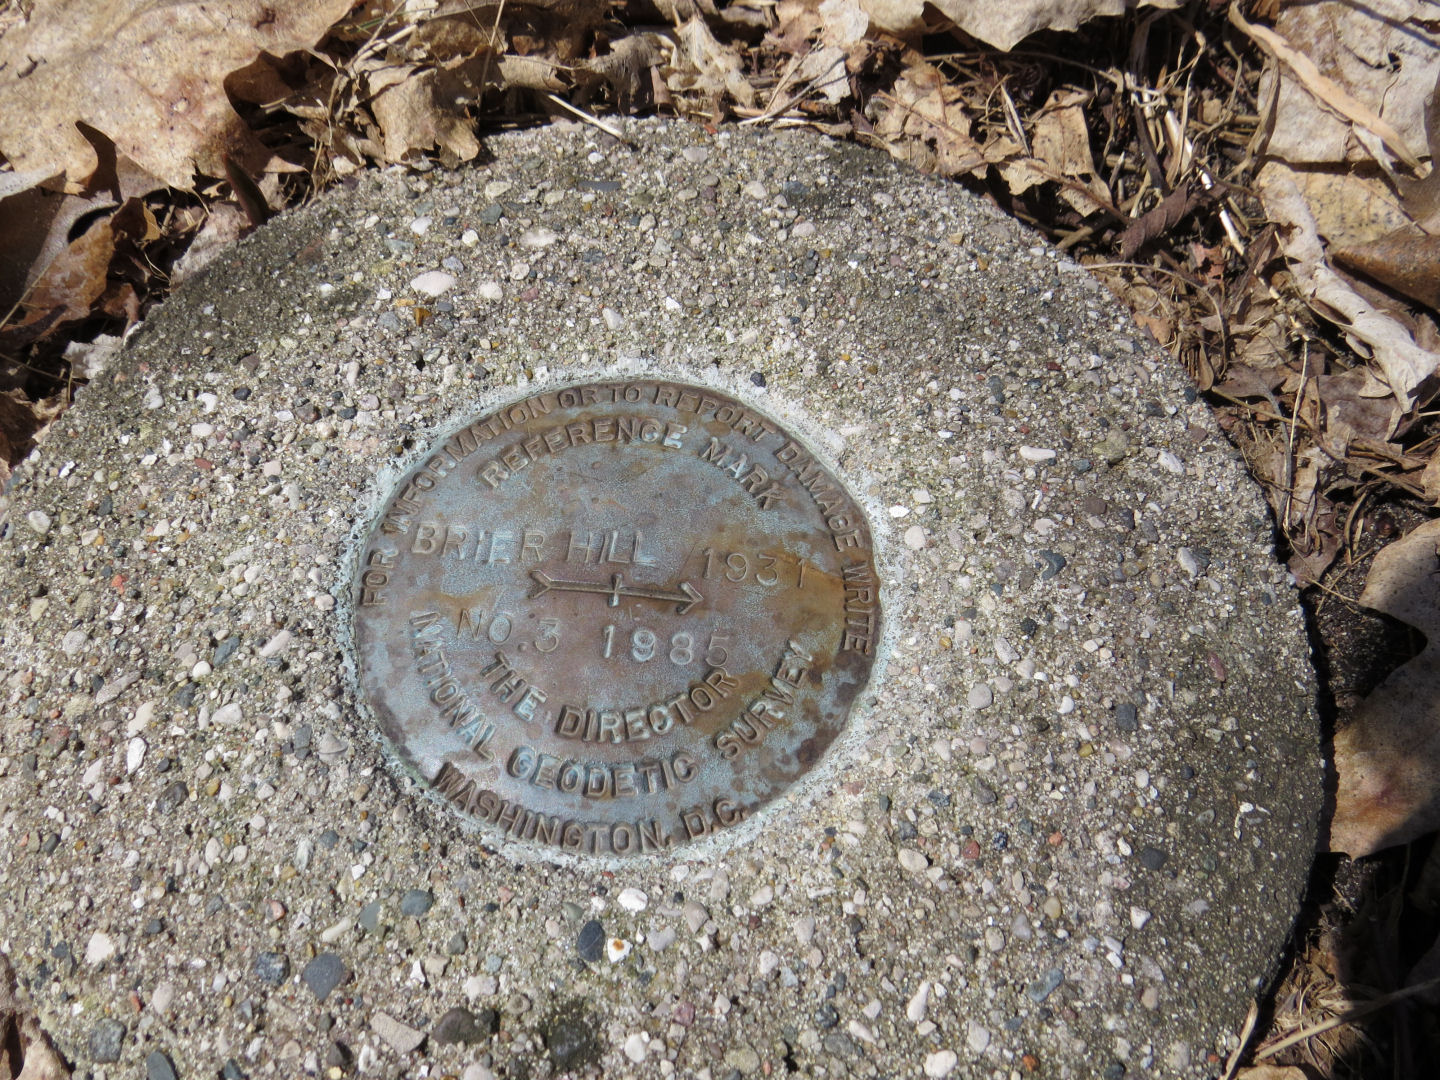 Briar Hill benchmark